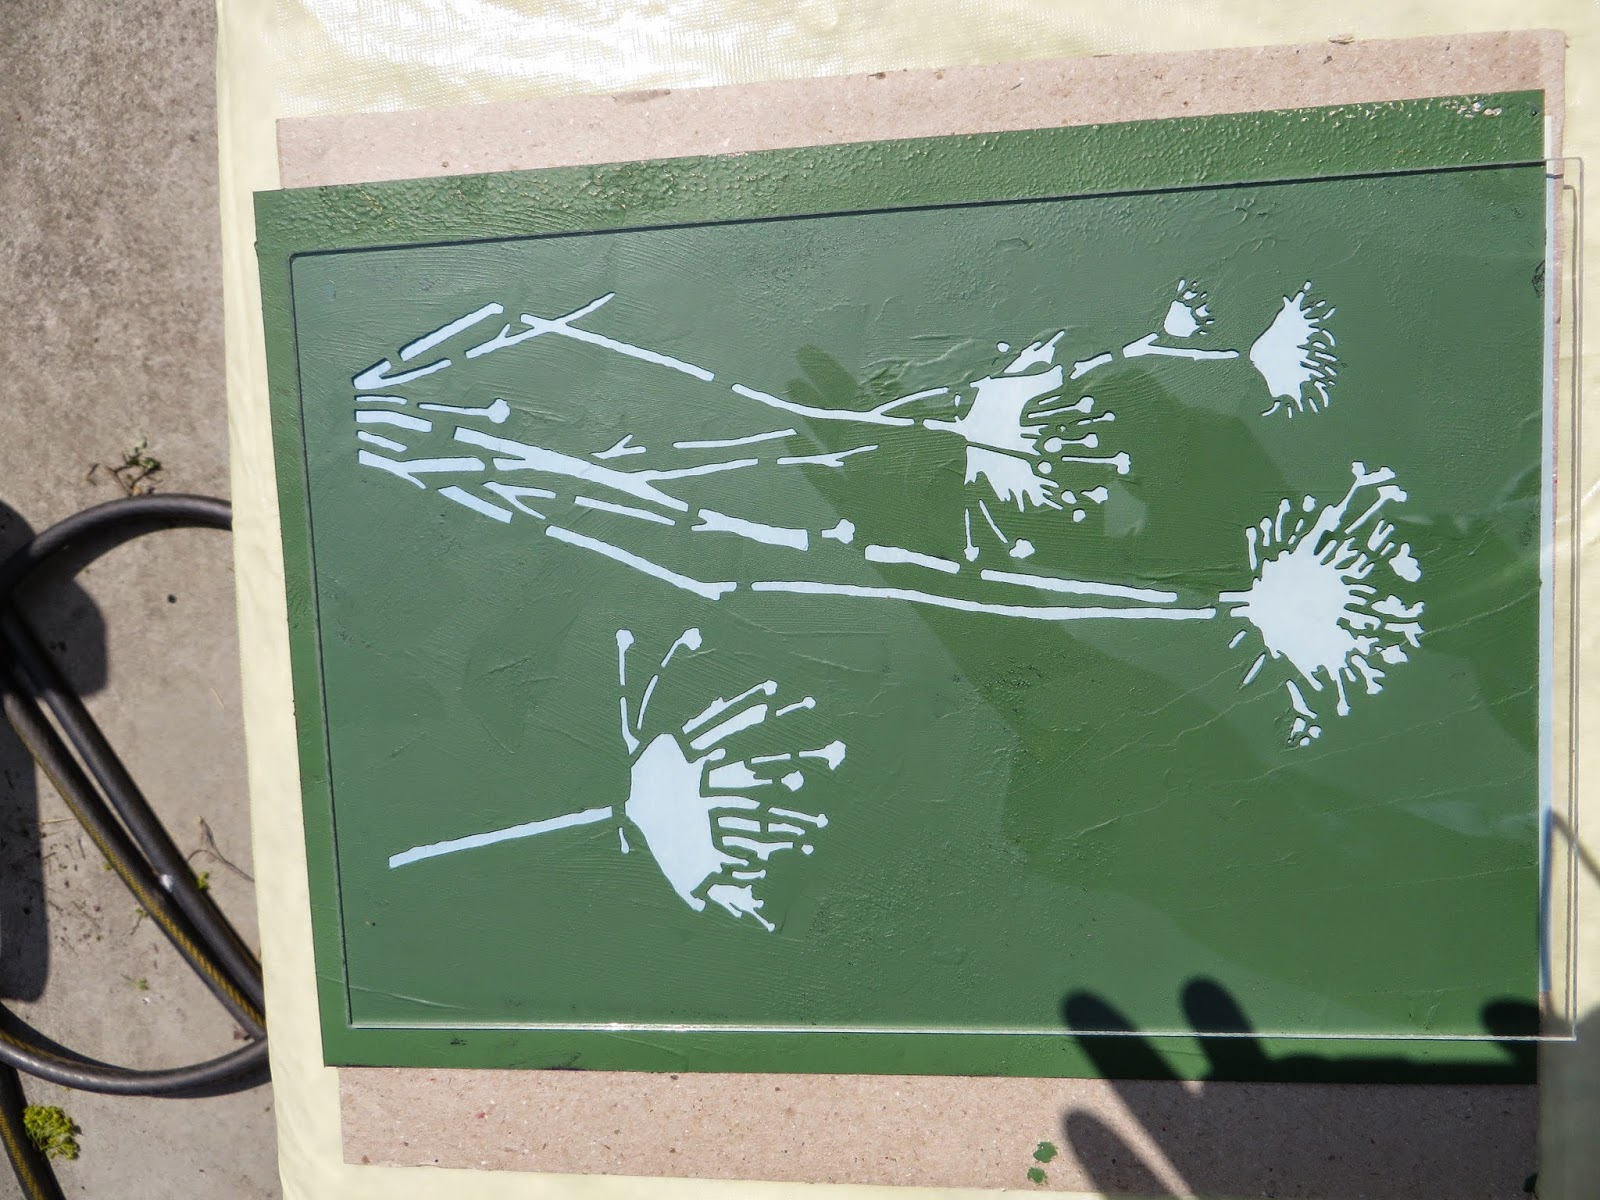 Art Using Sunlight And Stencils To Make Sun Prints